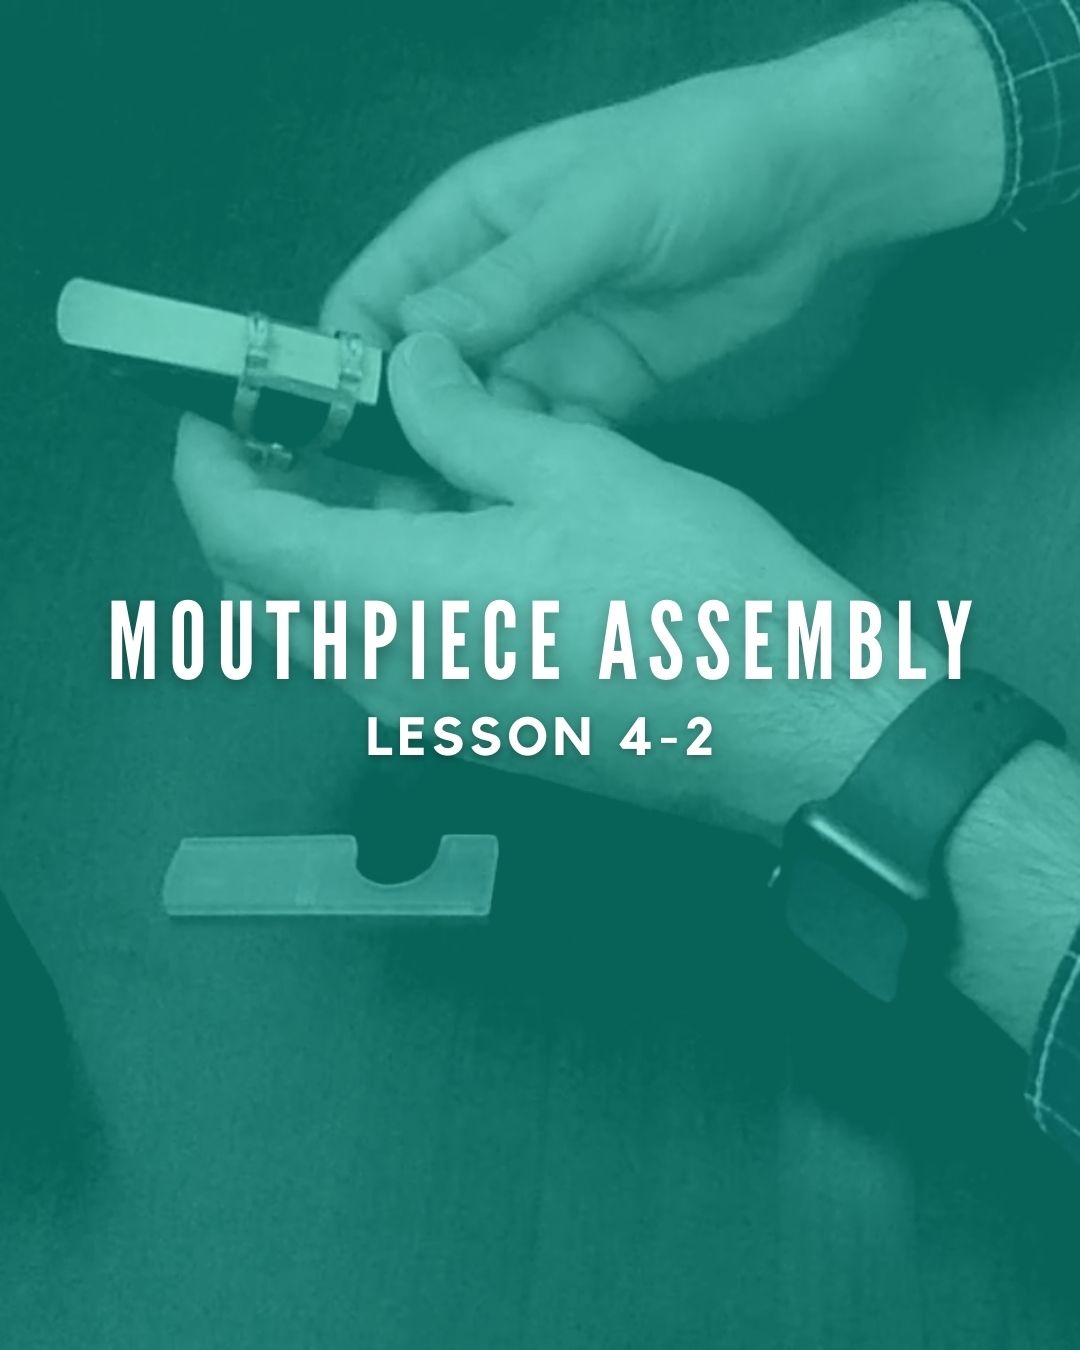 Mouthpiece Assembly